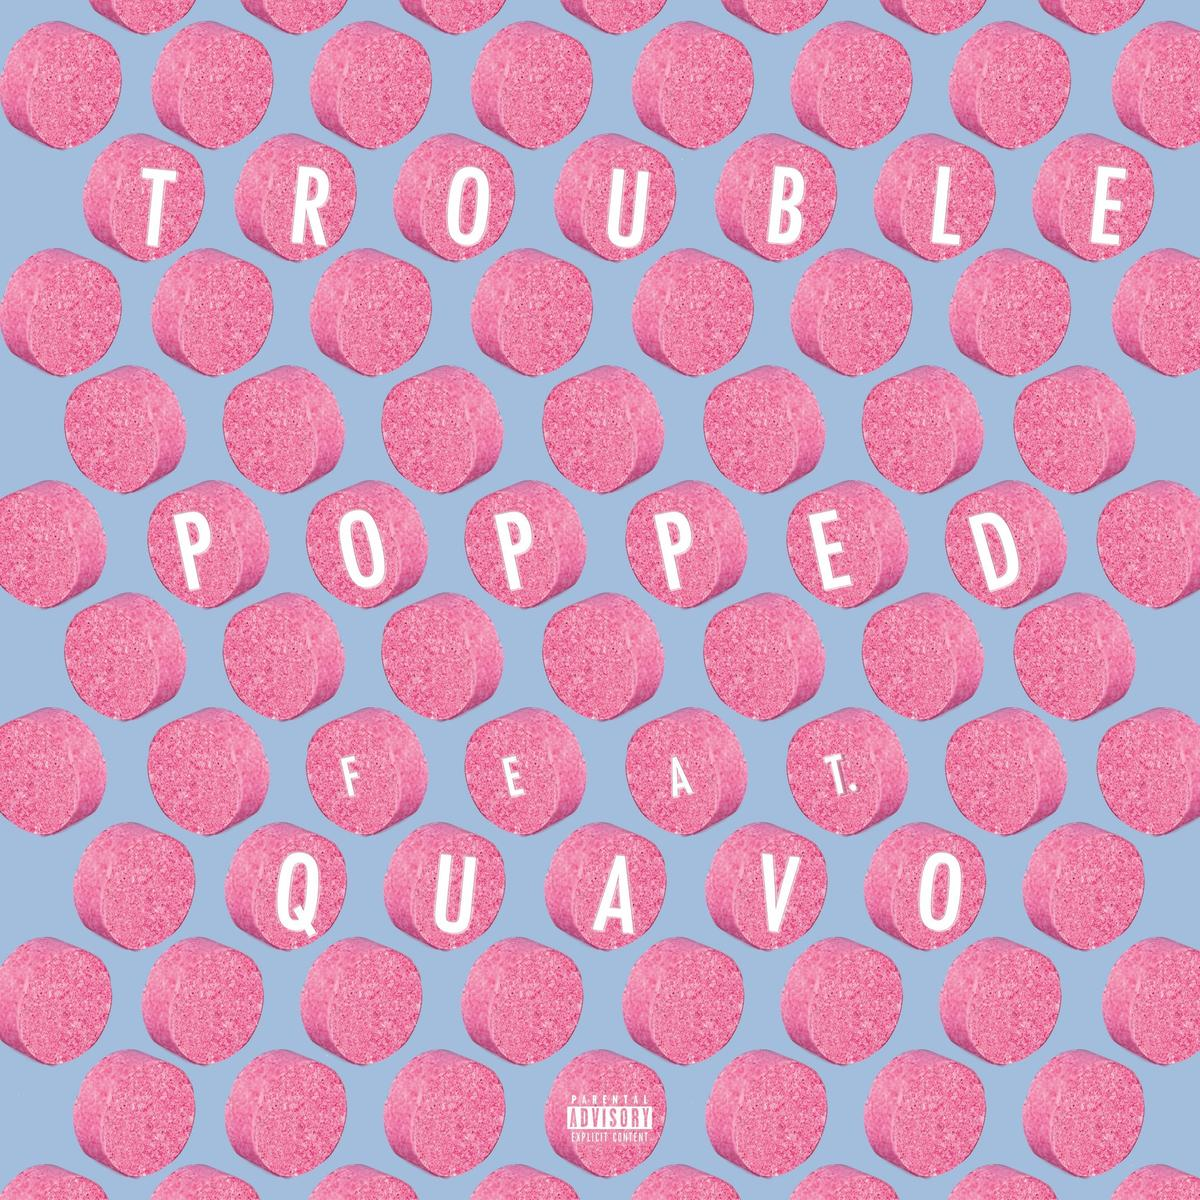 DOWNLOAD MP3 Trouble Ft. Quavo - Popped